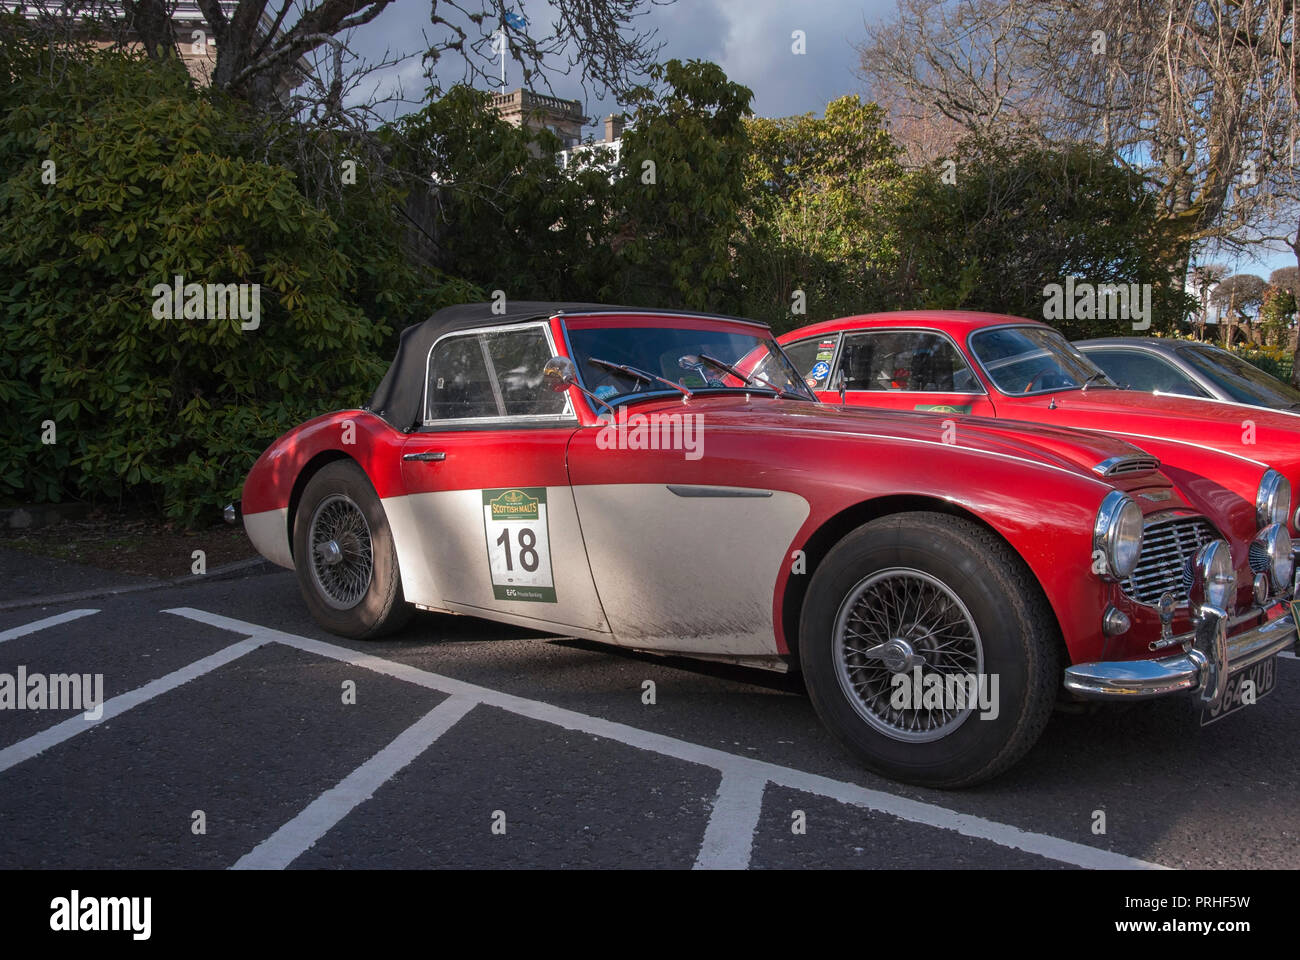 Red & White  Austin Healey 3000 100/6 Sports Car front right hand drivers side offside view of red and white right hand drive two door british convert - Stock Image